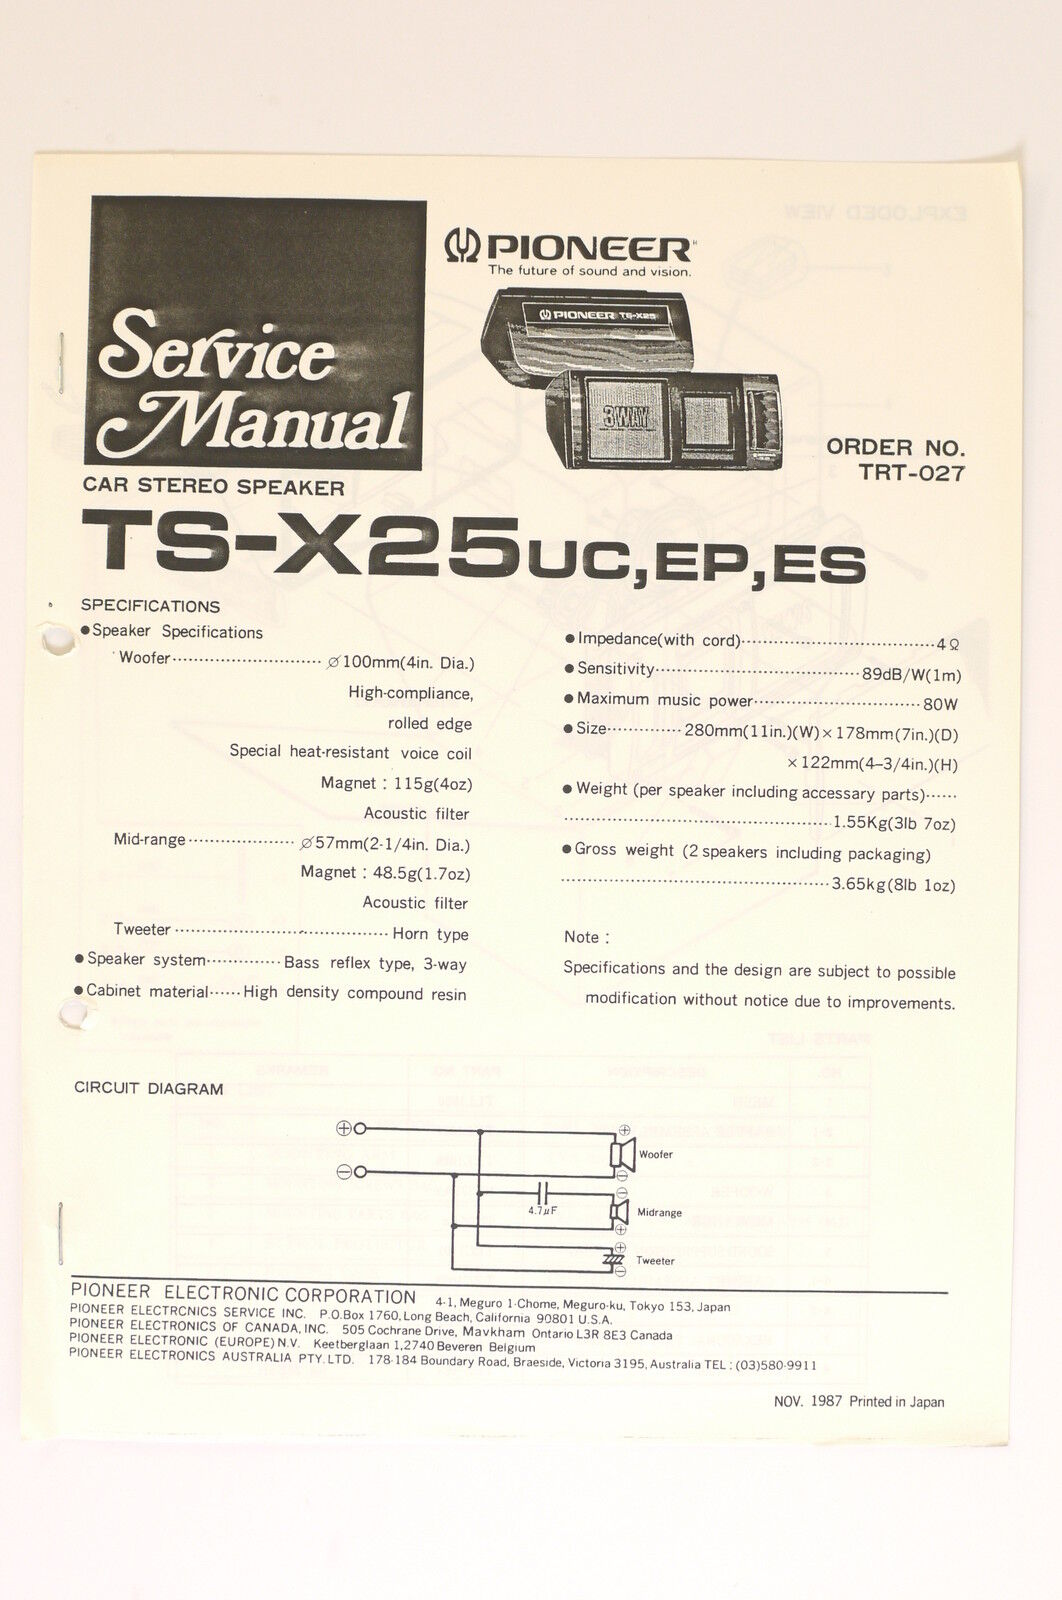 Pioneer Ts X25 Car Stereo Speaker Original Service Manual Wiring Audio System Basics Diagram O66 1 Of 1only 2 Available See More